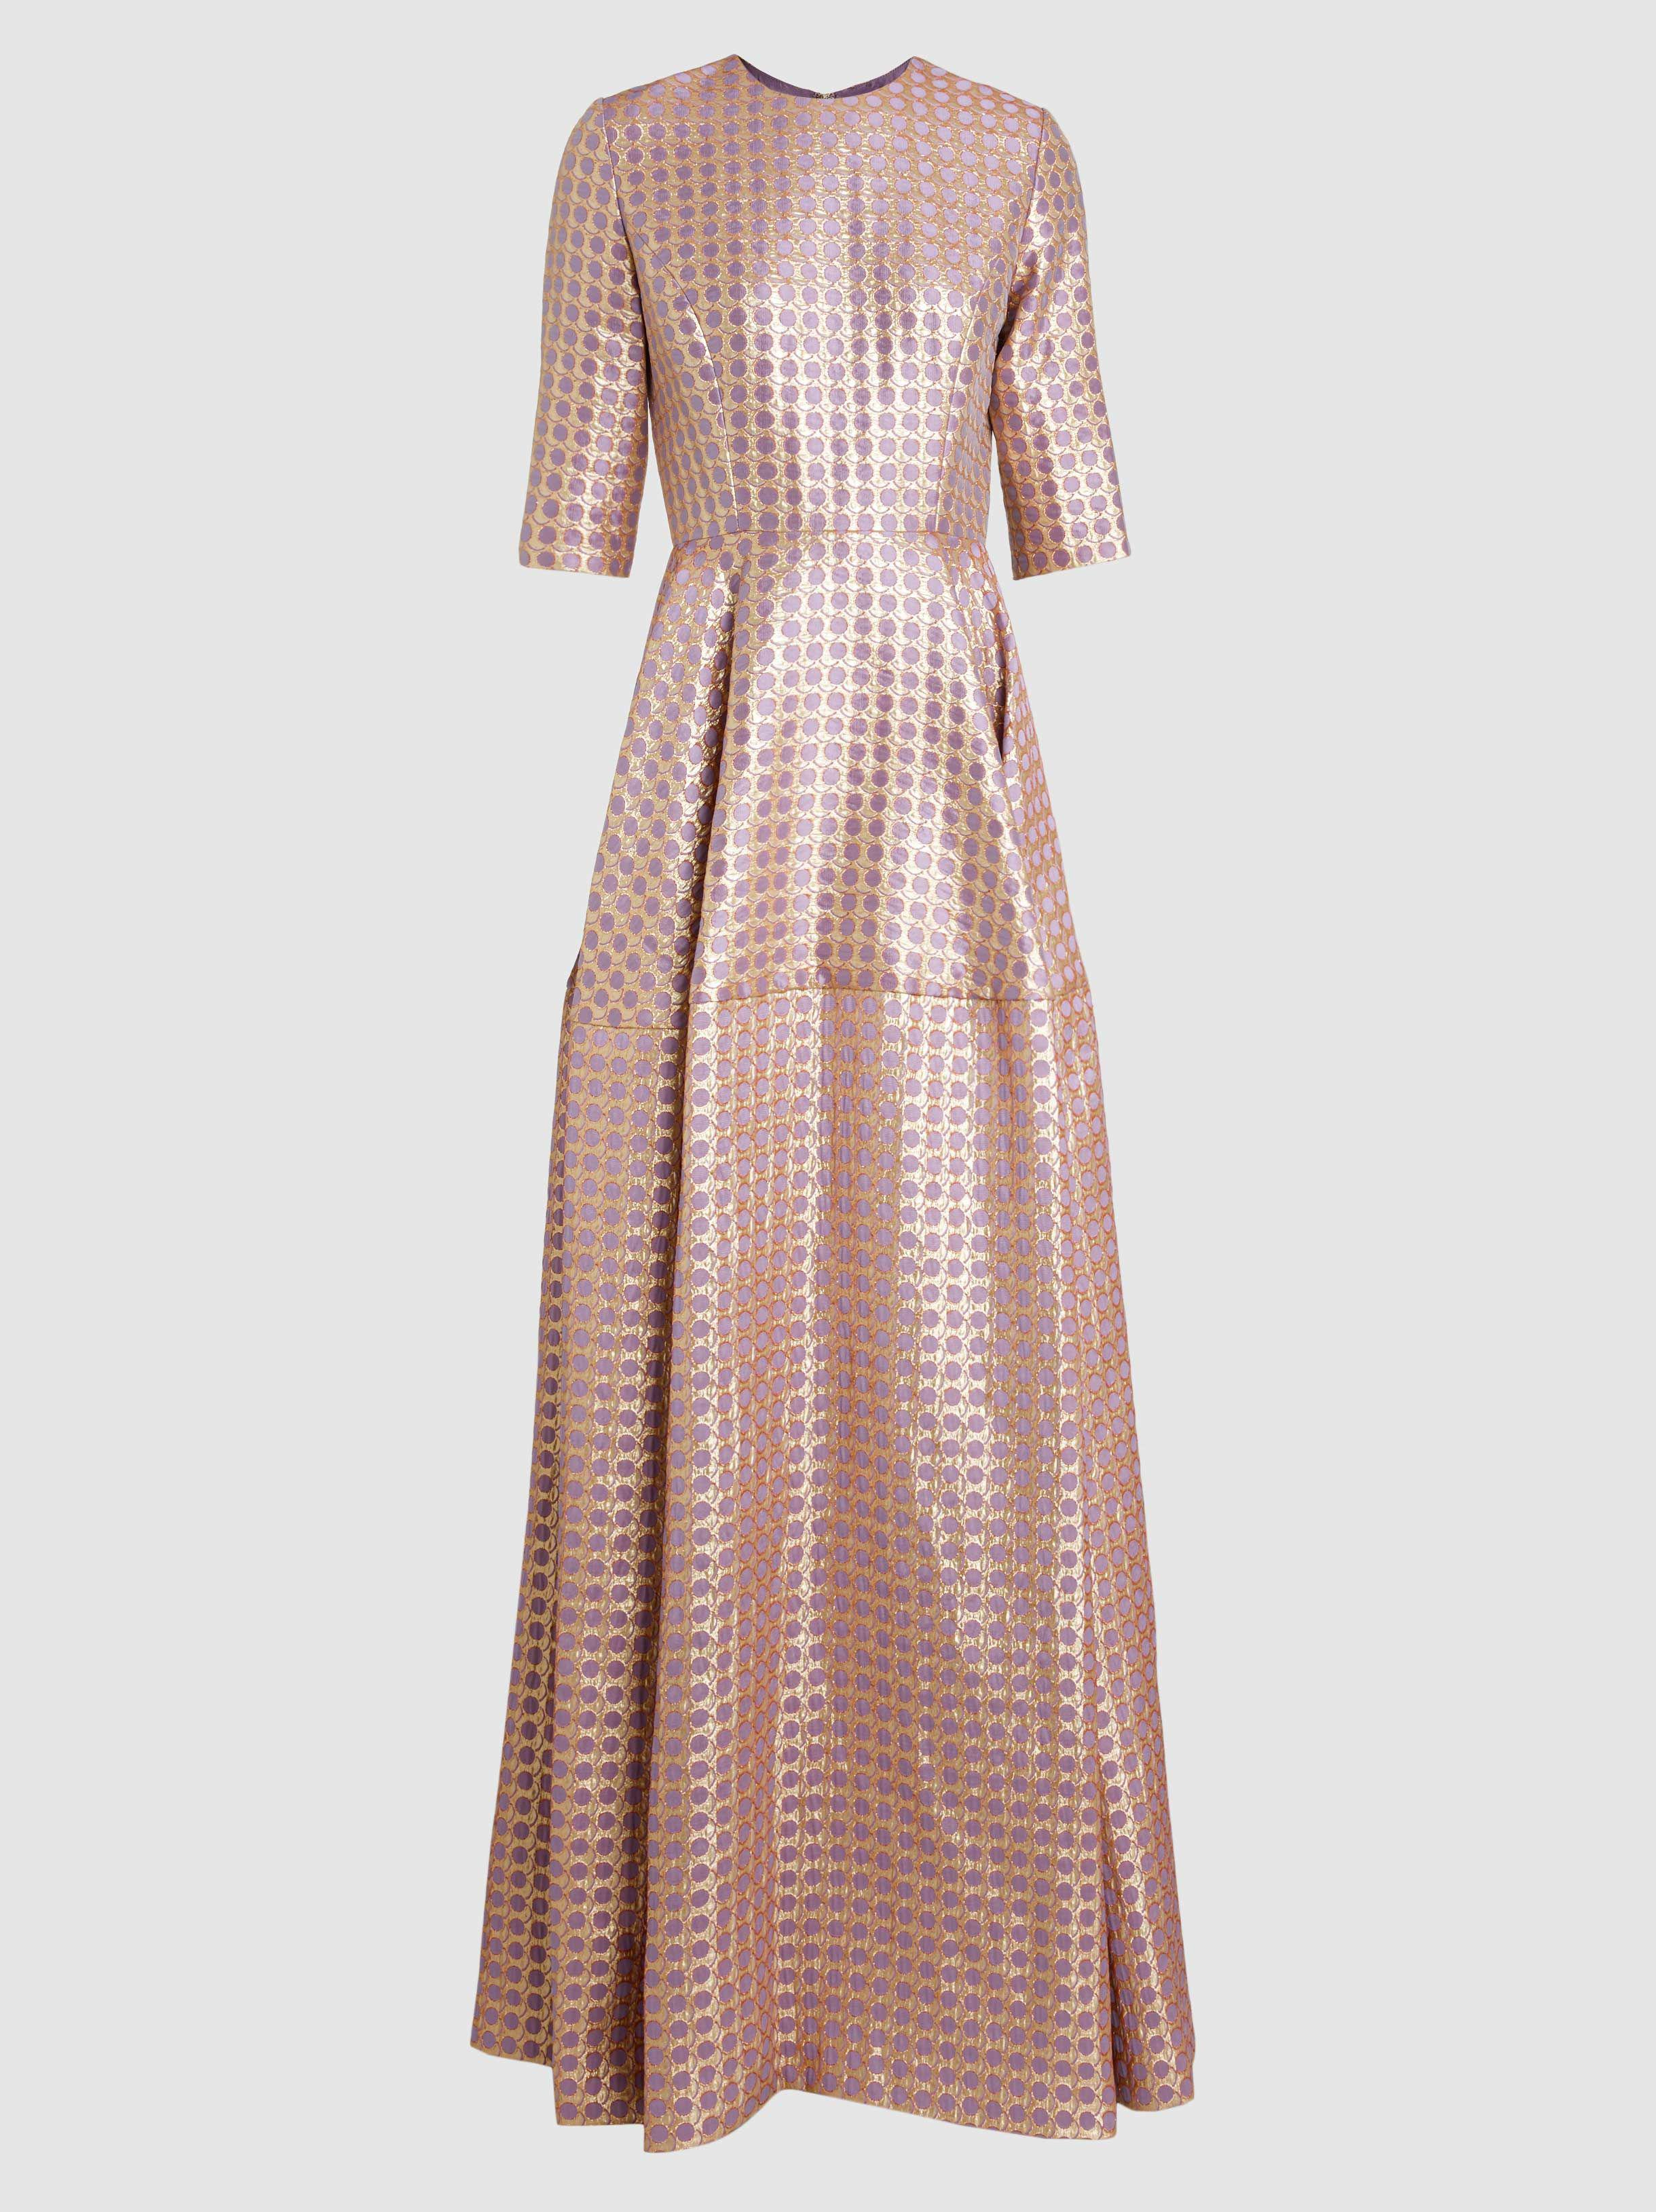 Metallic Jacquard Gown - Lilac Reem Acra Low Shipping Fee Limited Edition Sale Online Cheap Sast With Mastercard FnYla4